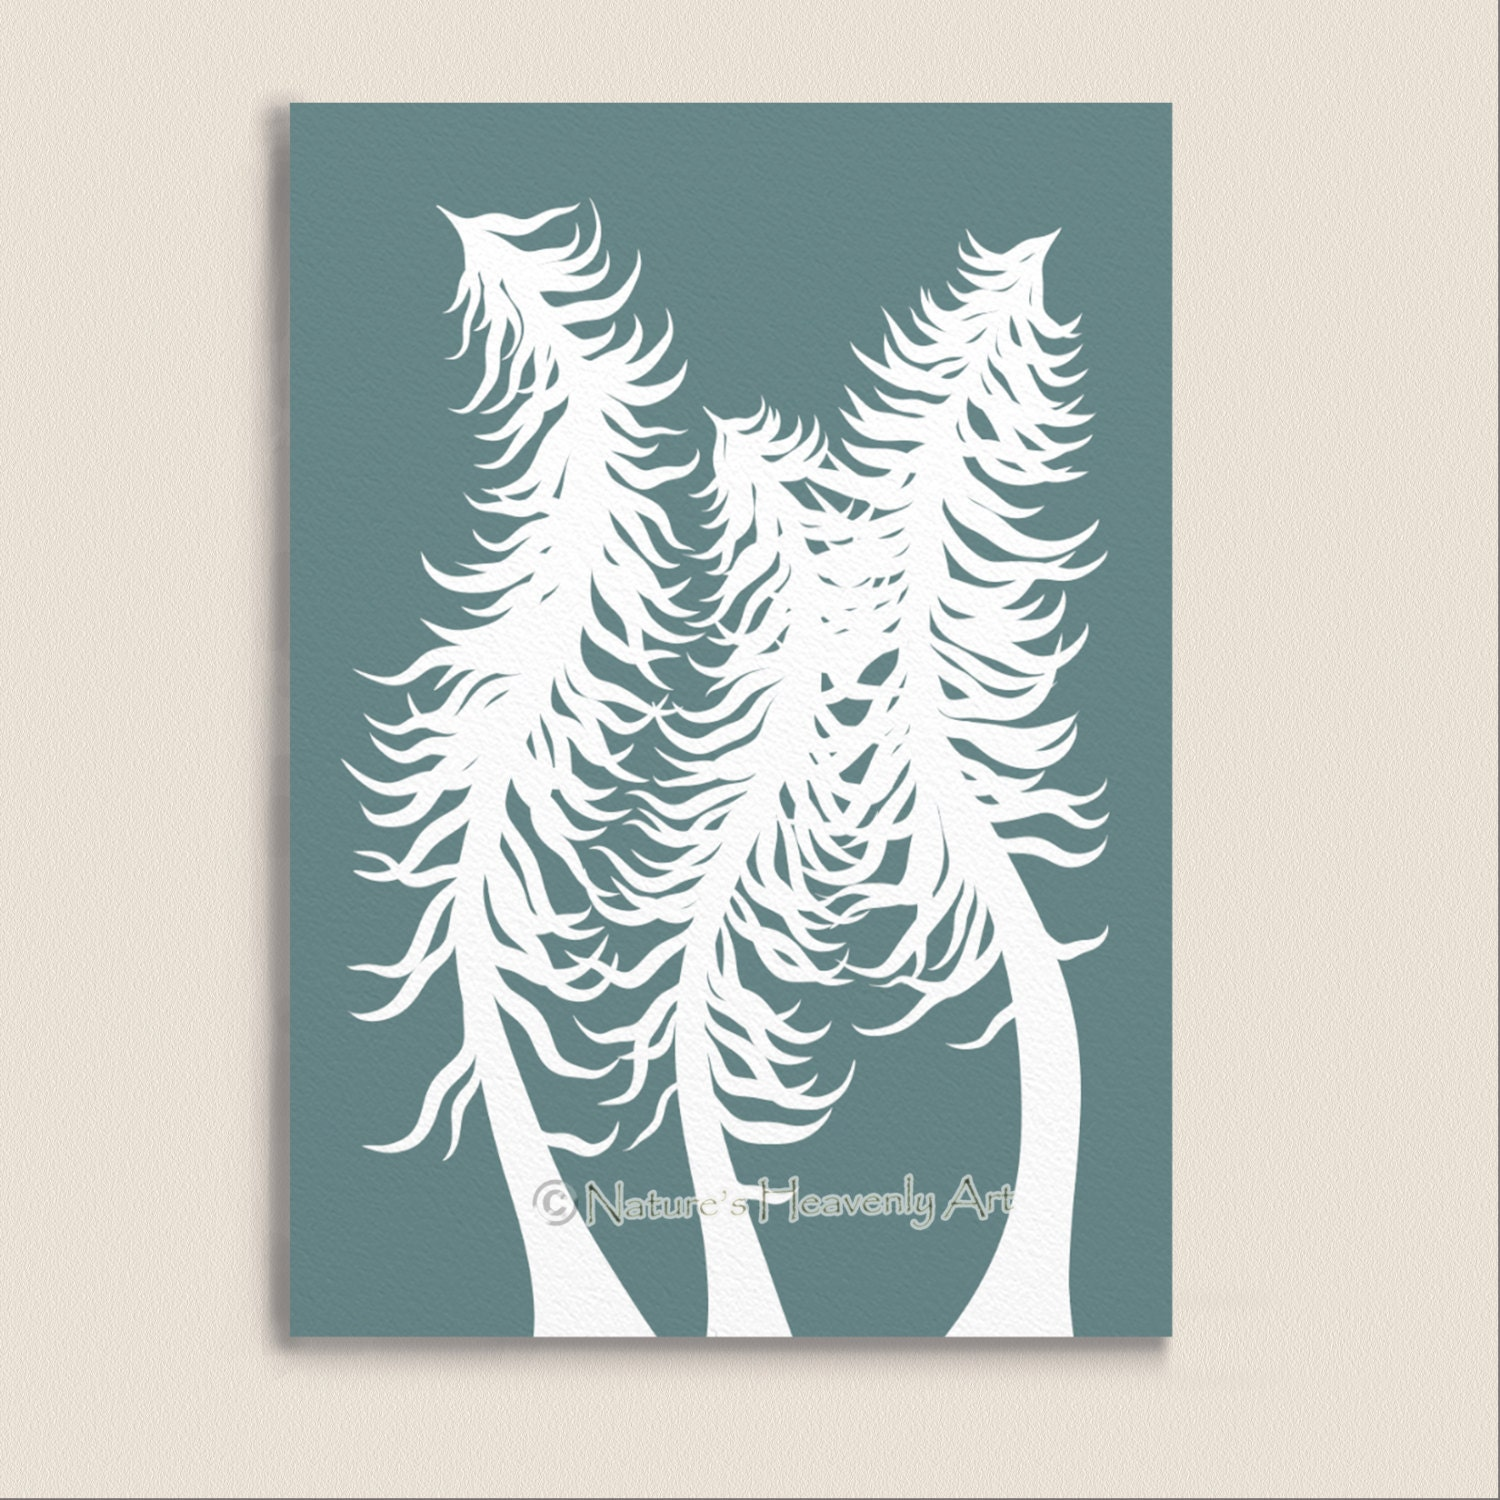 Wall Decor Pine Trees : Items similar to blue teal abstract pine tree wall art